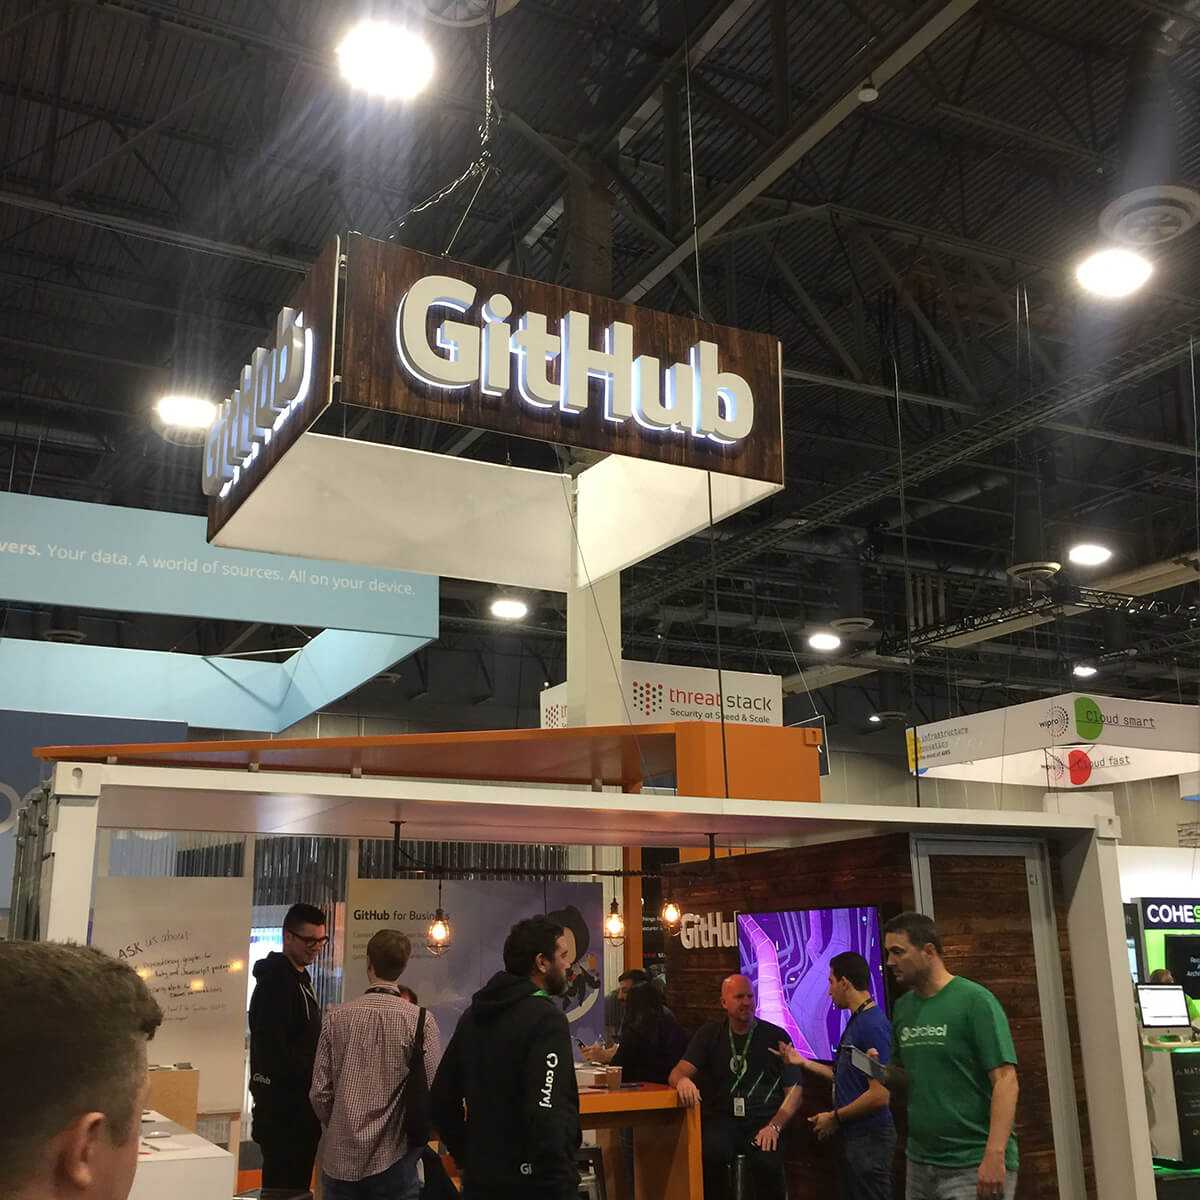 Github booth at re:invent expo